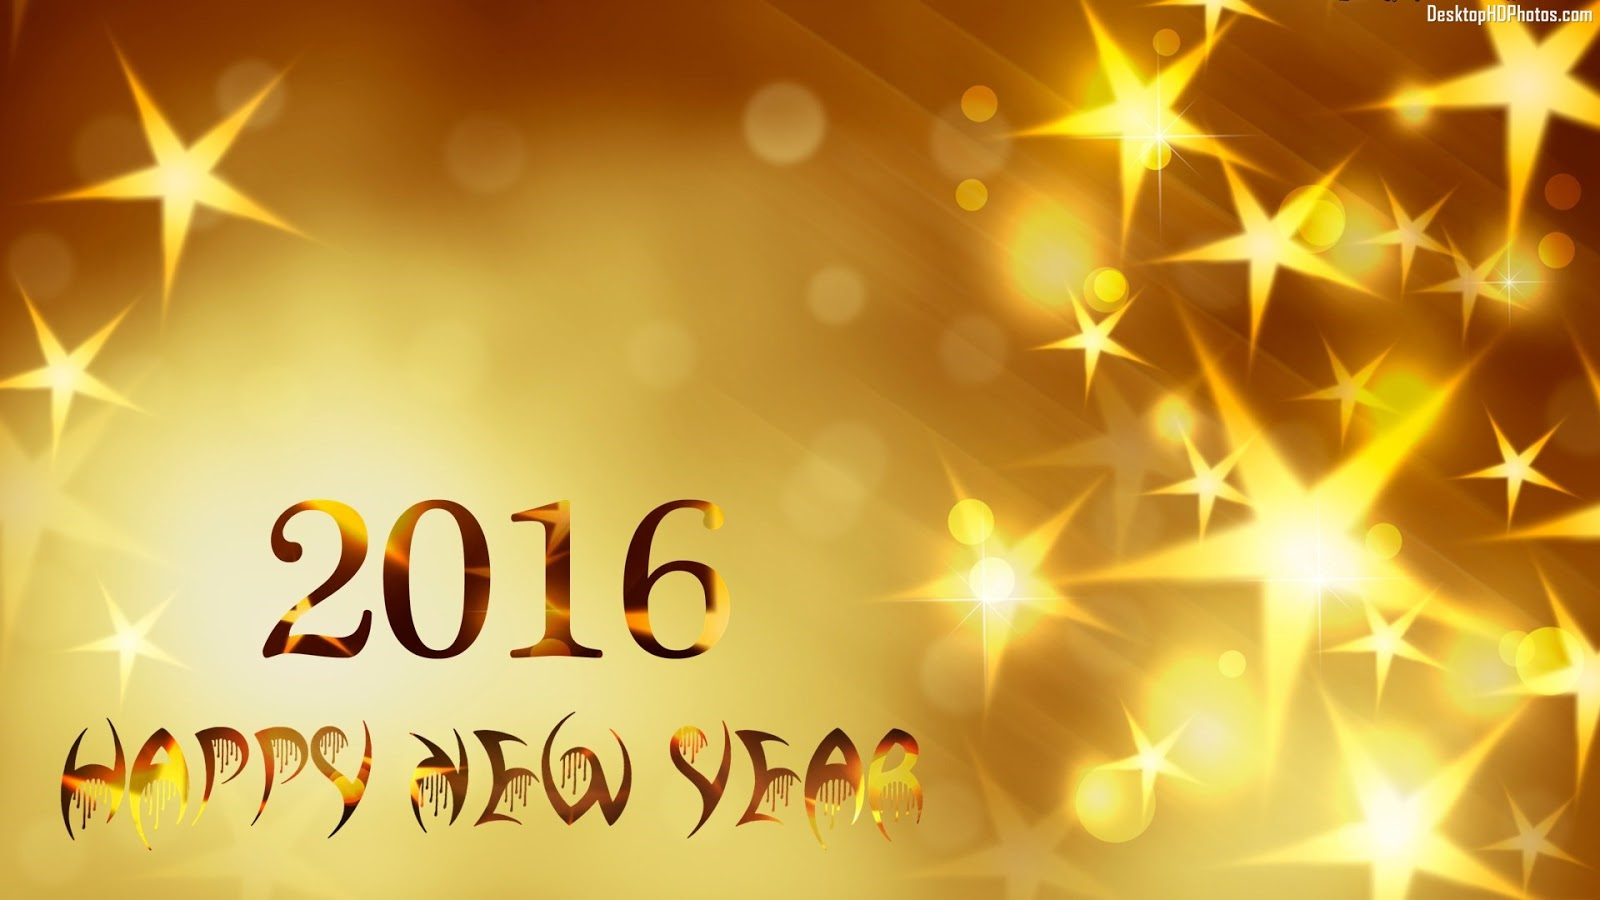 Model Happy New Year 2016 HD Wallpapers   New Year 2016 Wallpapers 1600x900